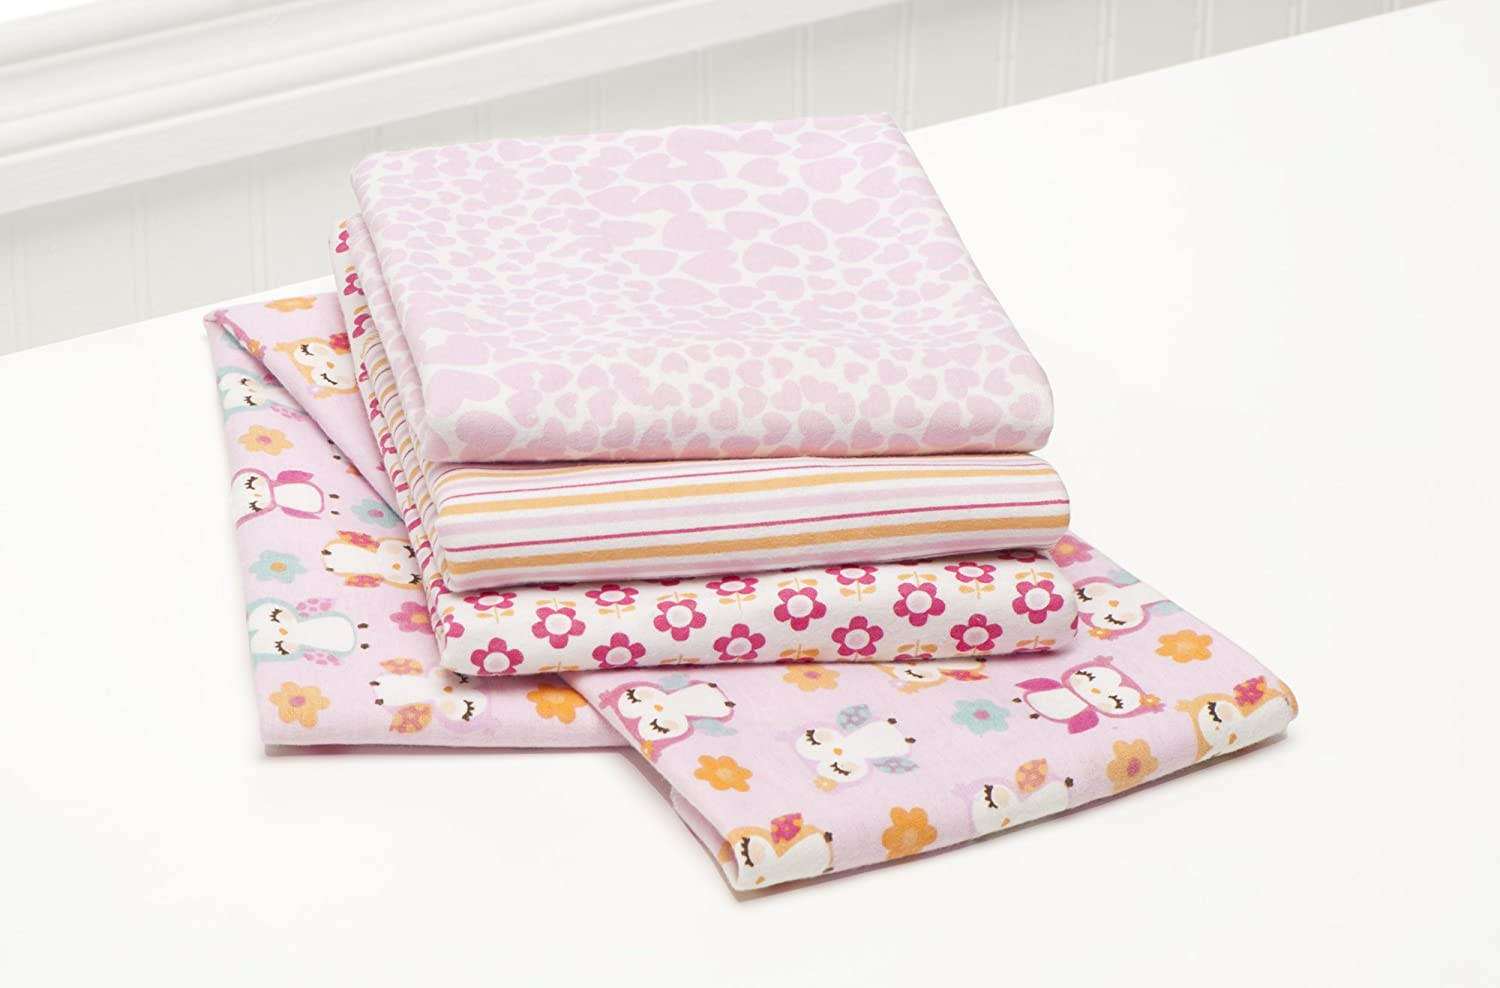 Carters Receiving Blankets Discontinued Manufacturer Image 2